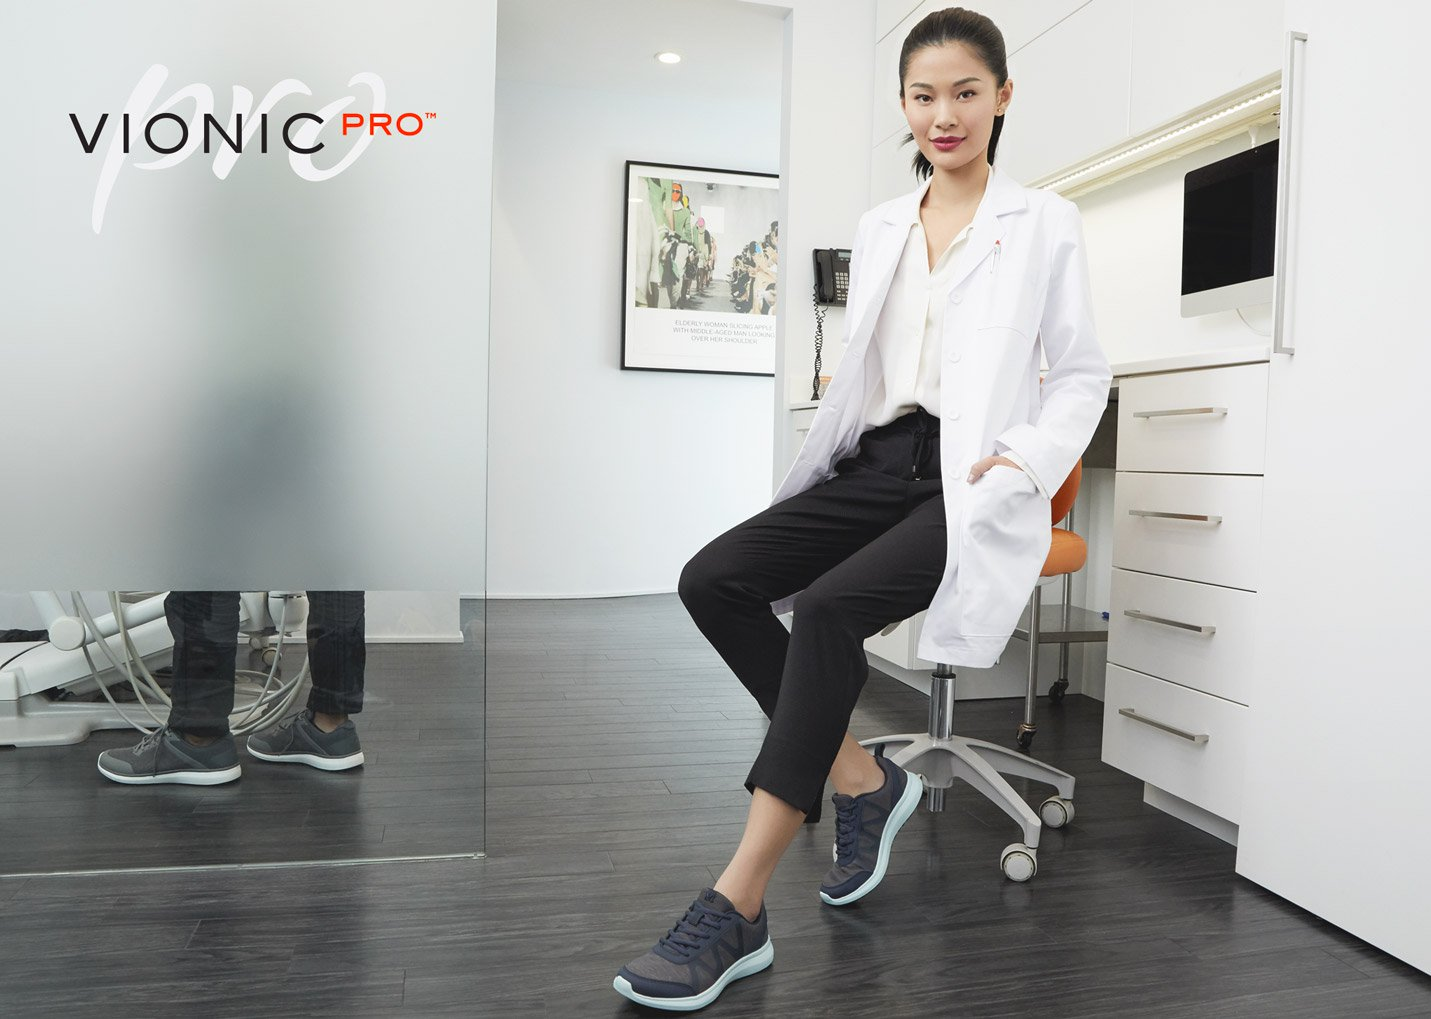 View Vionic Pro Work Shoes